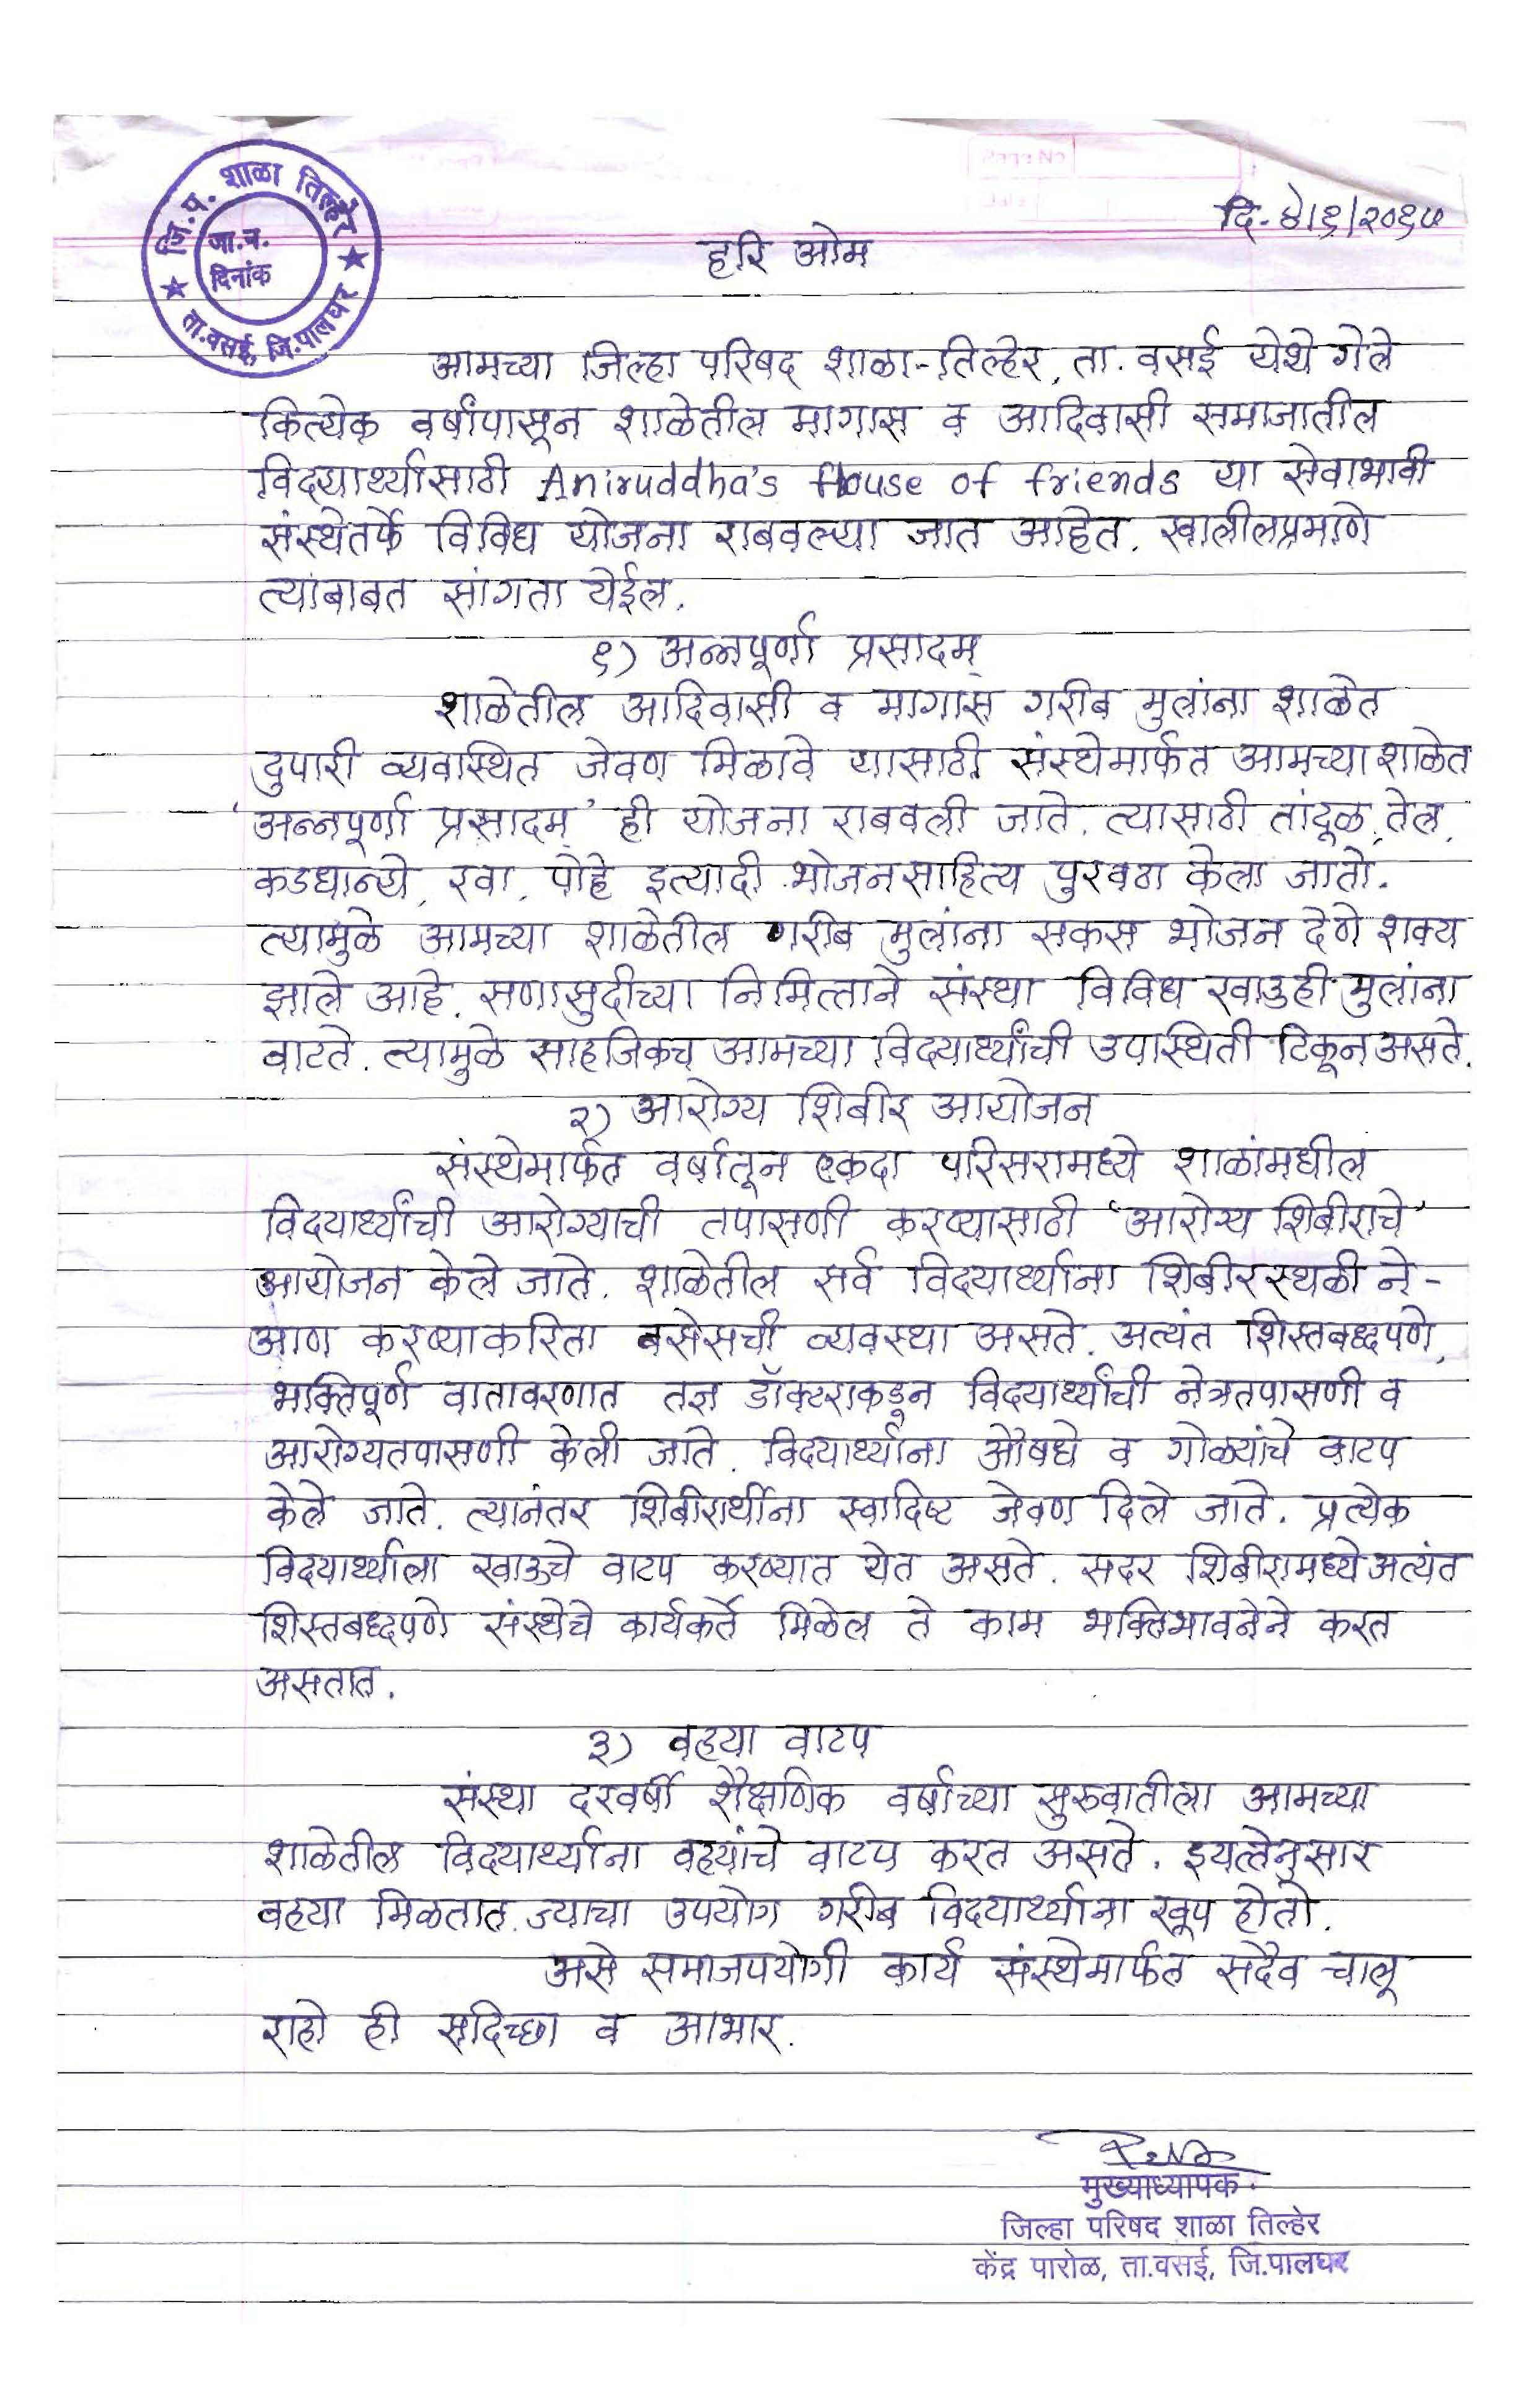 Appreciation-Letter from Zilla Parishad School 2017-for-Aniruddhafoundation-Compassion-Social-services